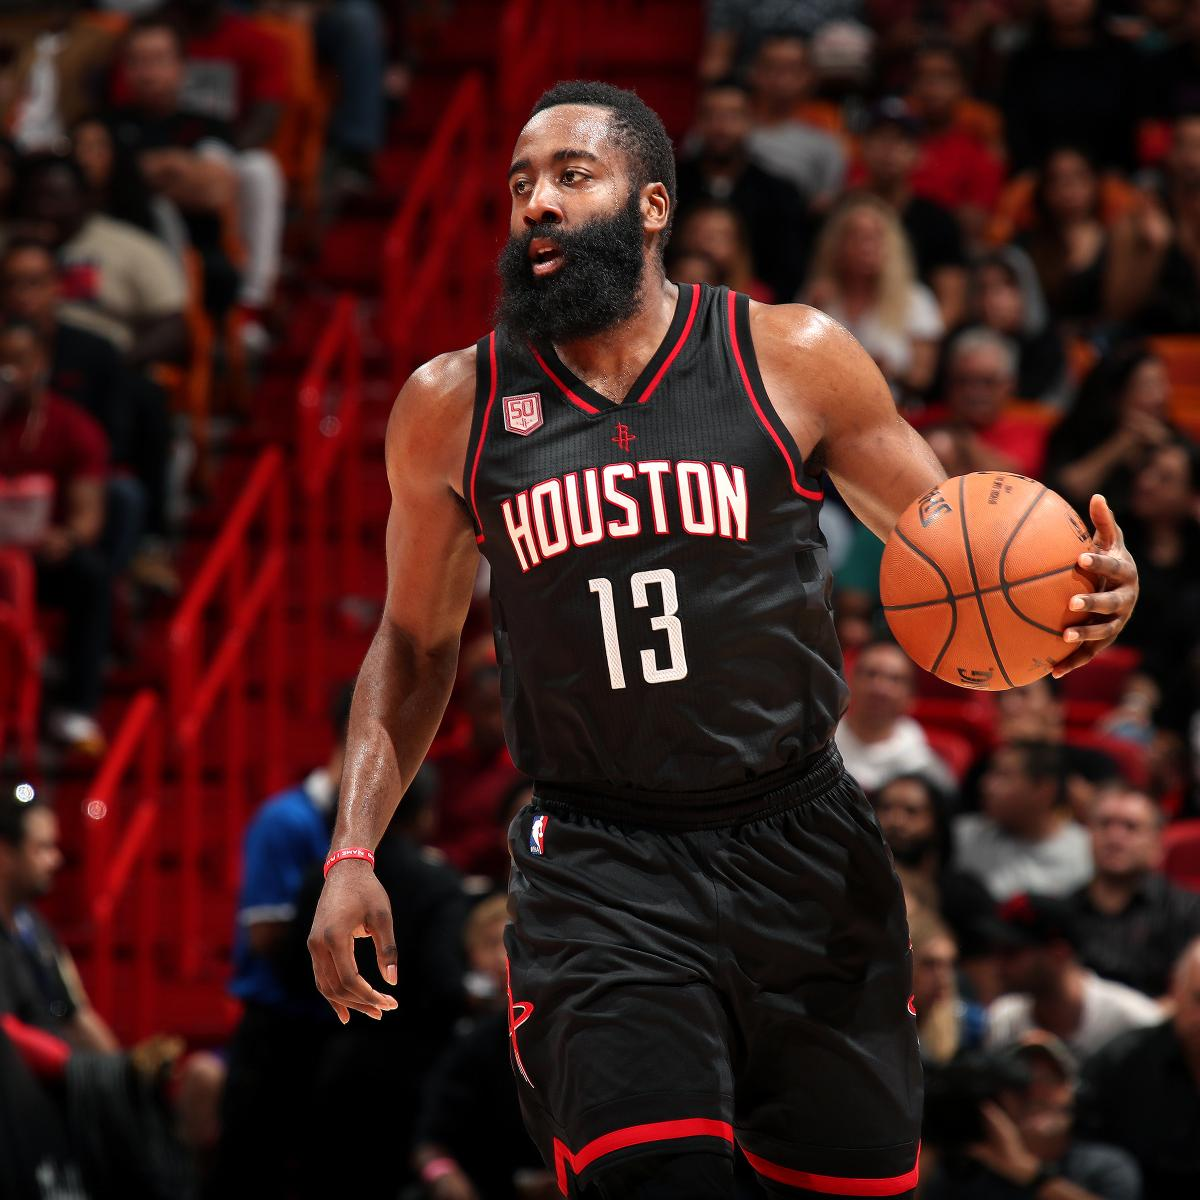 James Harden Injury Report: James Harden Posted League-Leading 4th 40-Point Triple